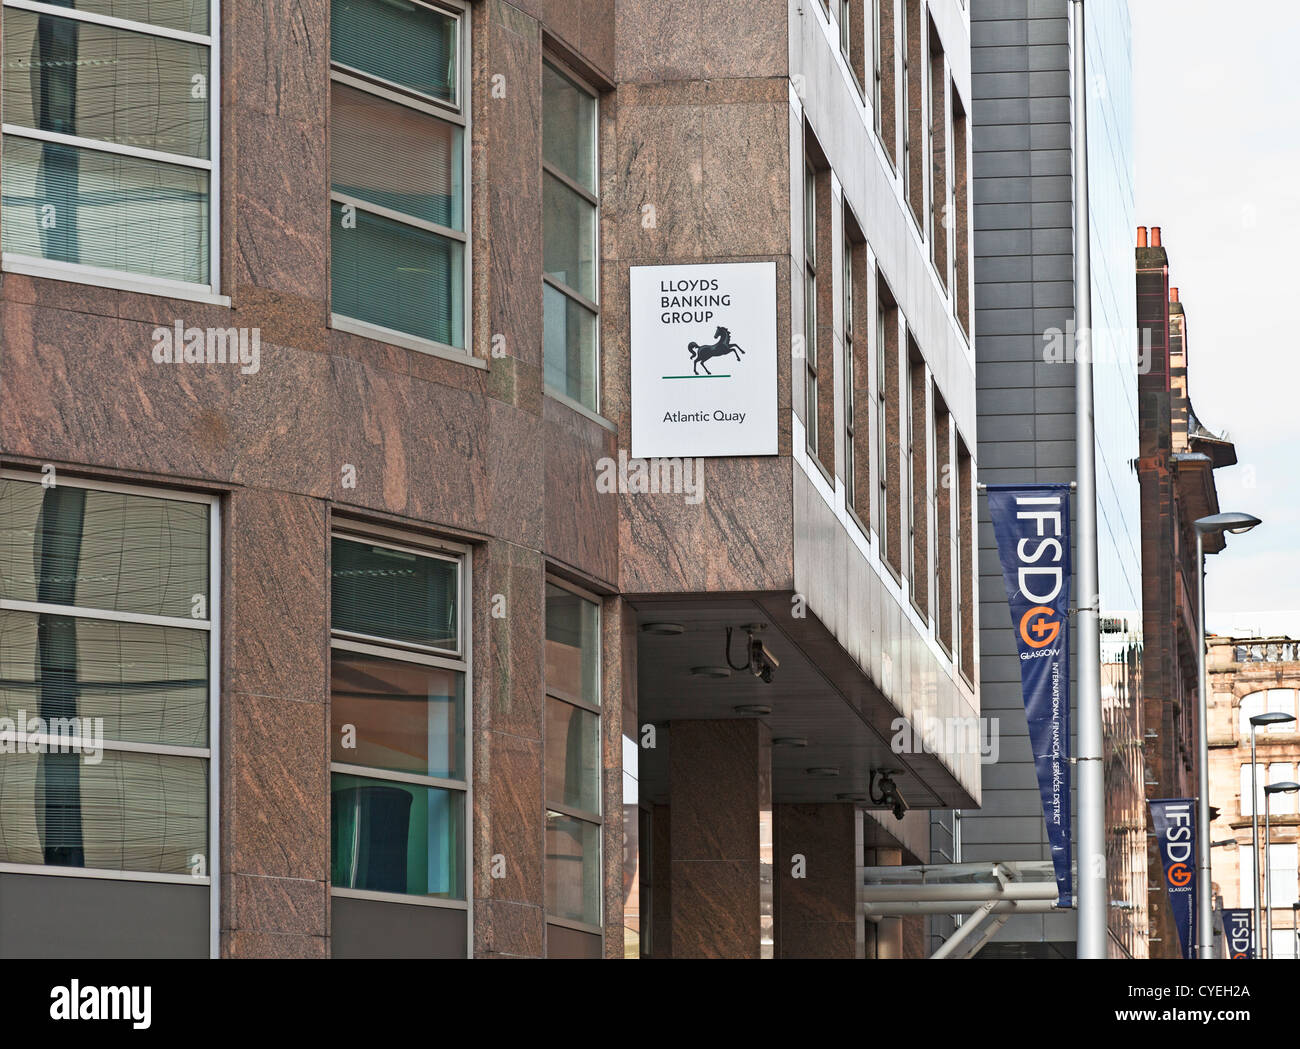 main entrance to lloyds banking group telephony office in atlantic